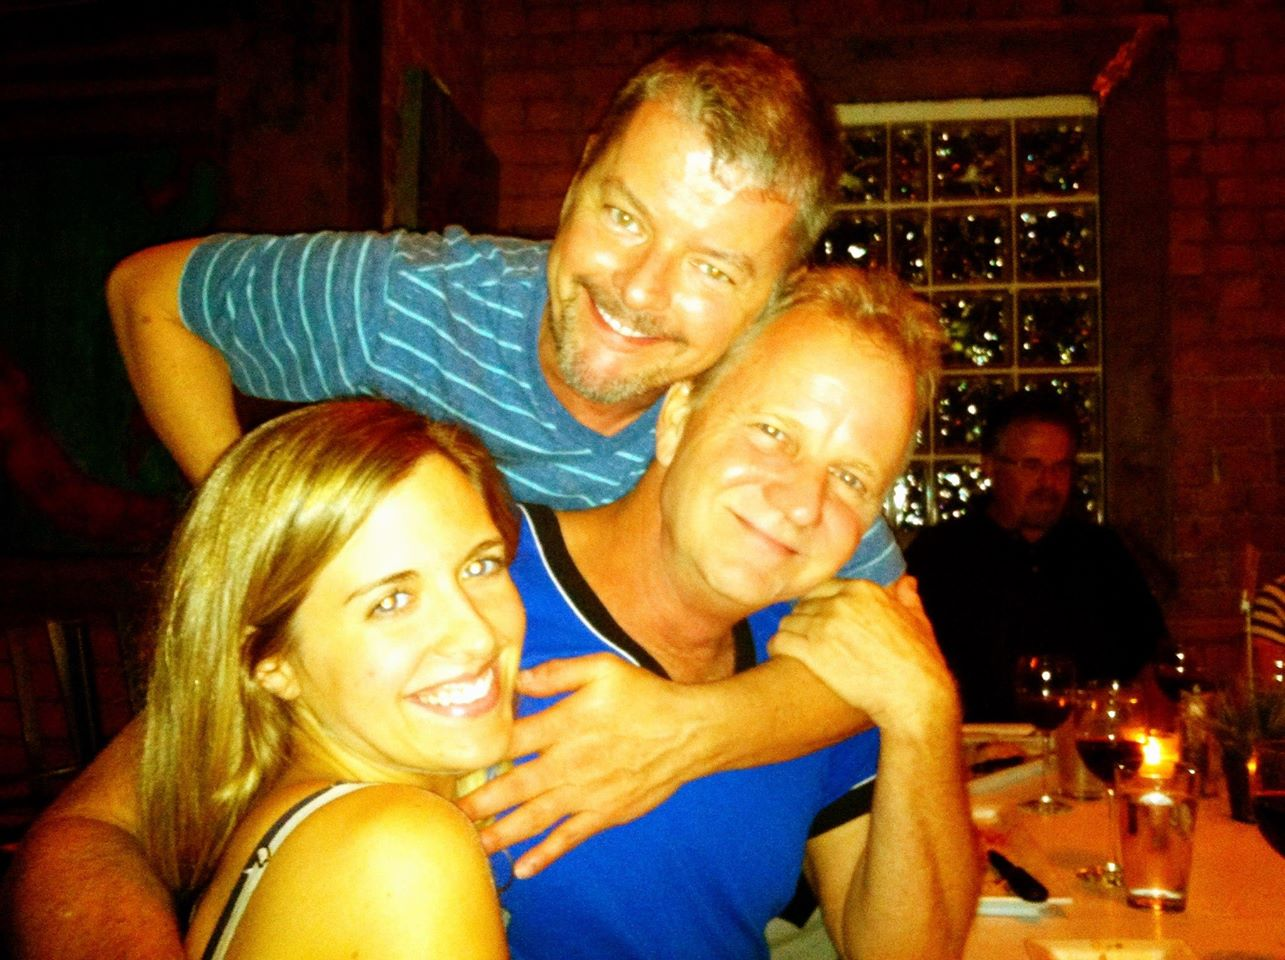 Julia Alexandra, Eric Chapman and David Weiss enjoy dinner. (Photo credit needed)